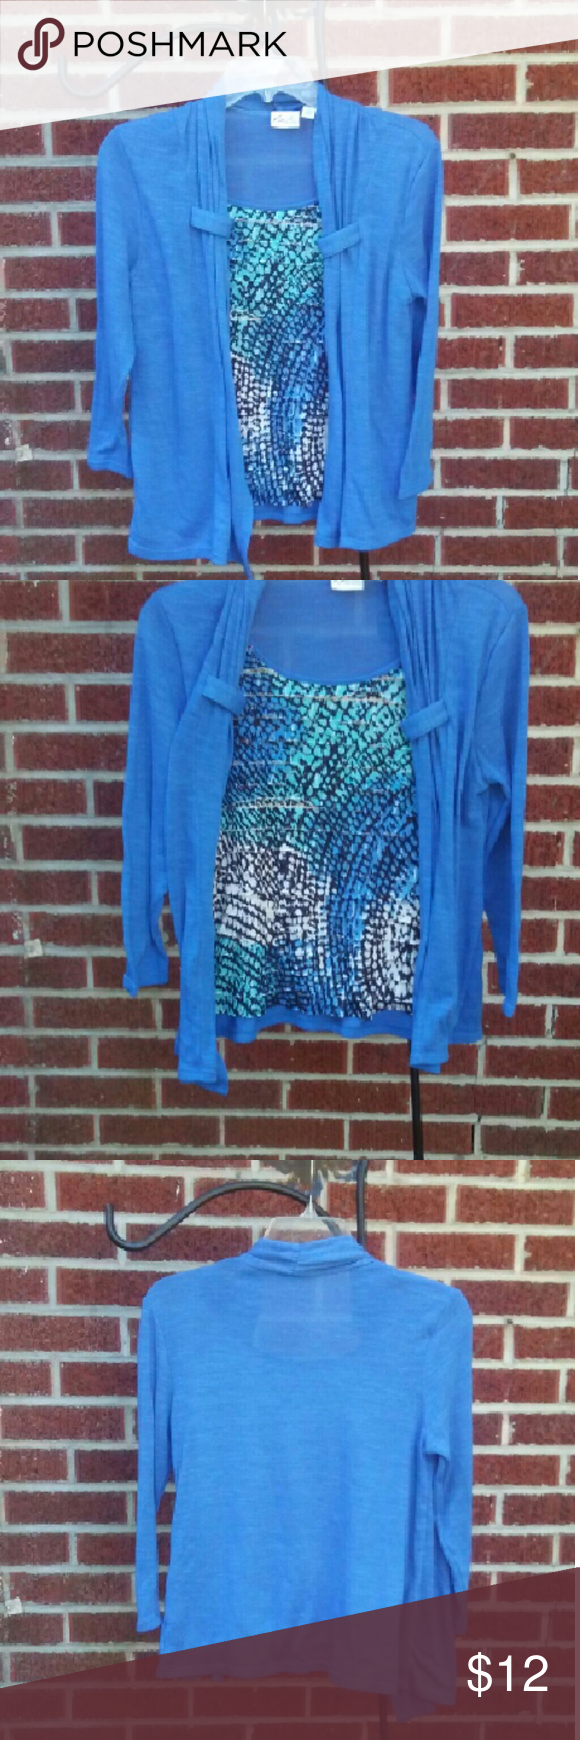 Kim Rogers Mulicolored Top with Attached Cardigan Top has flirty multicolor ruffles on front,with a blue attached cardigan.  Body:97% polyester,3%spandex; Inset:97% polyester,3%spandex Size:PS Kim Rogers( Petite) Tops